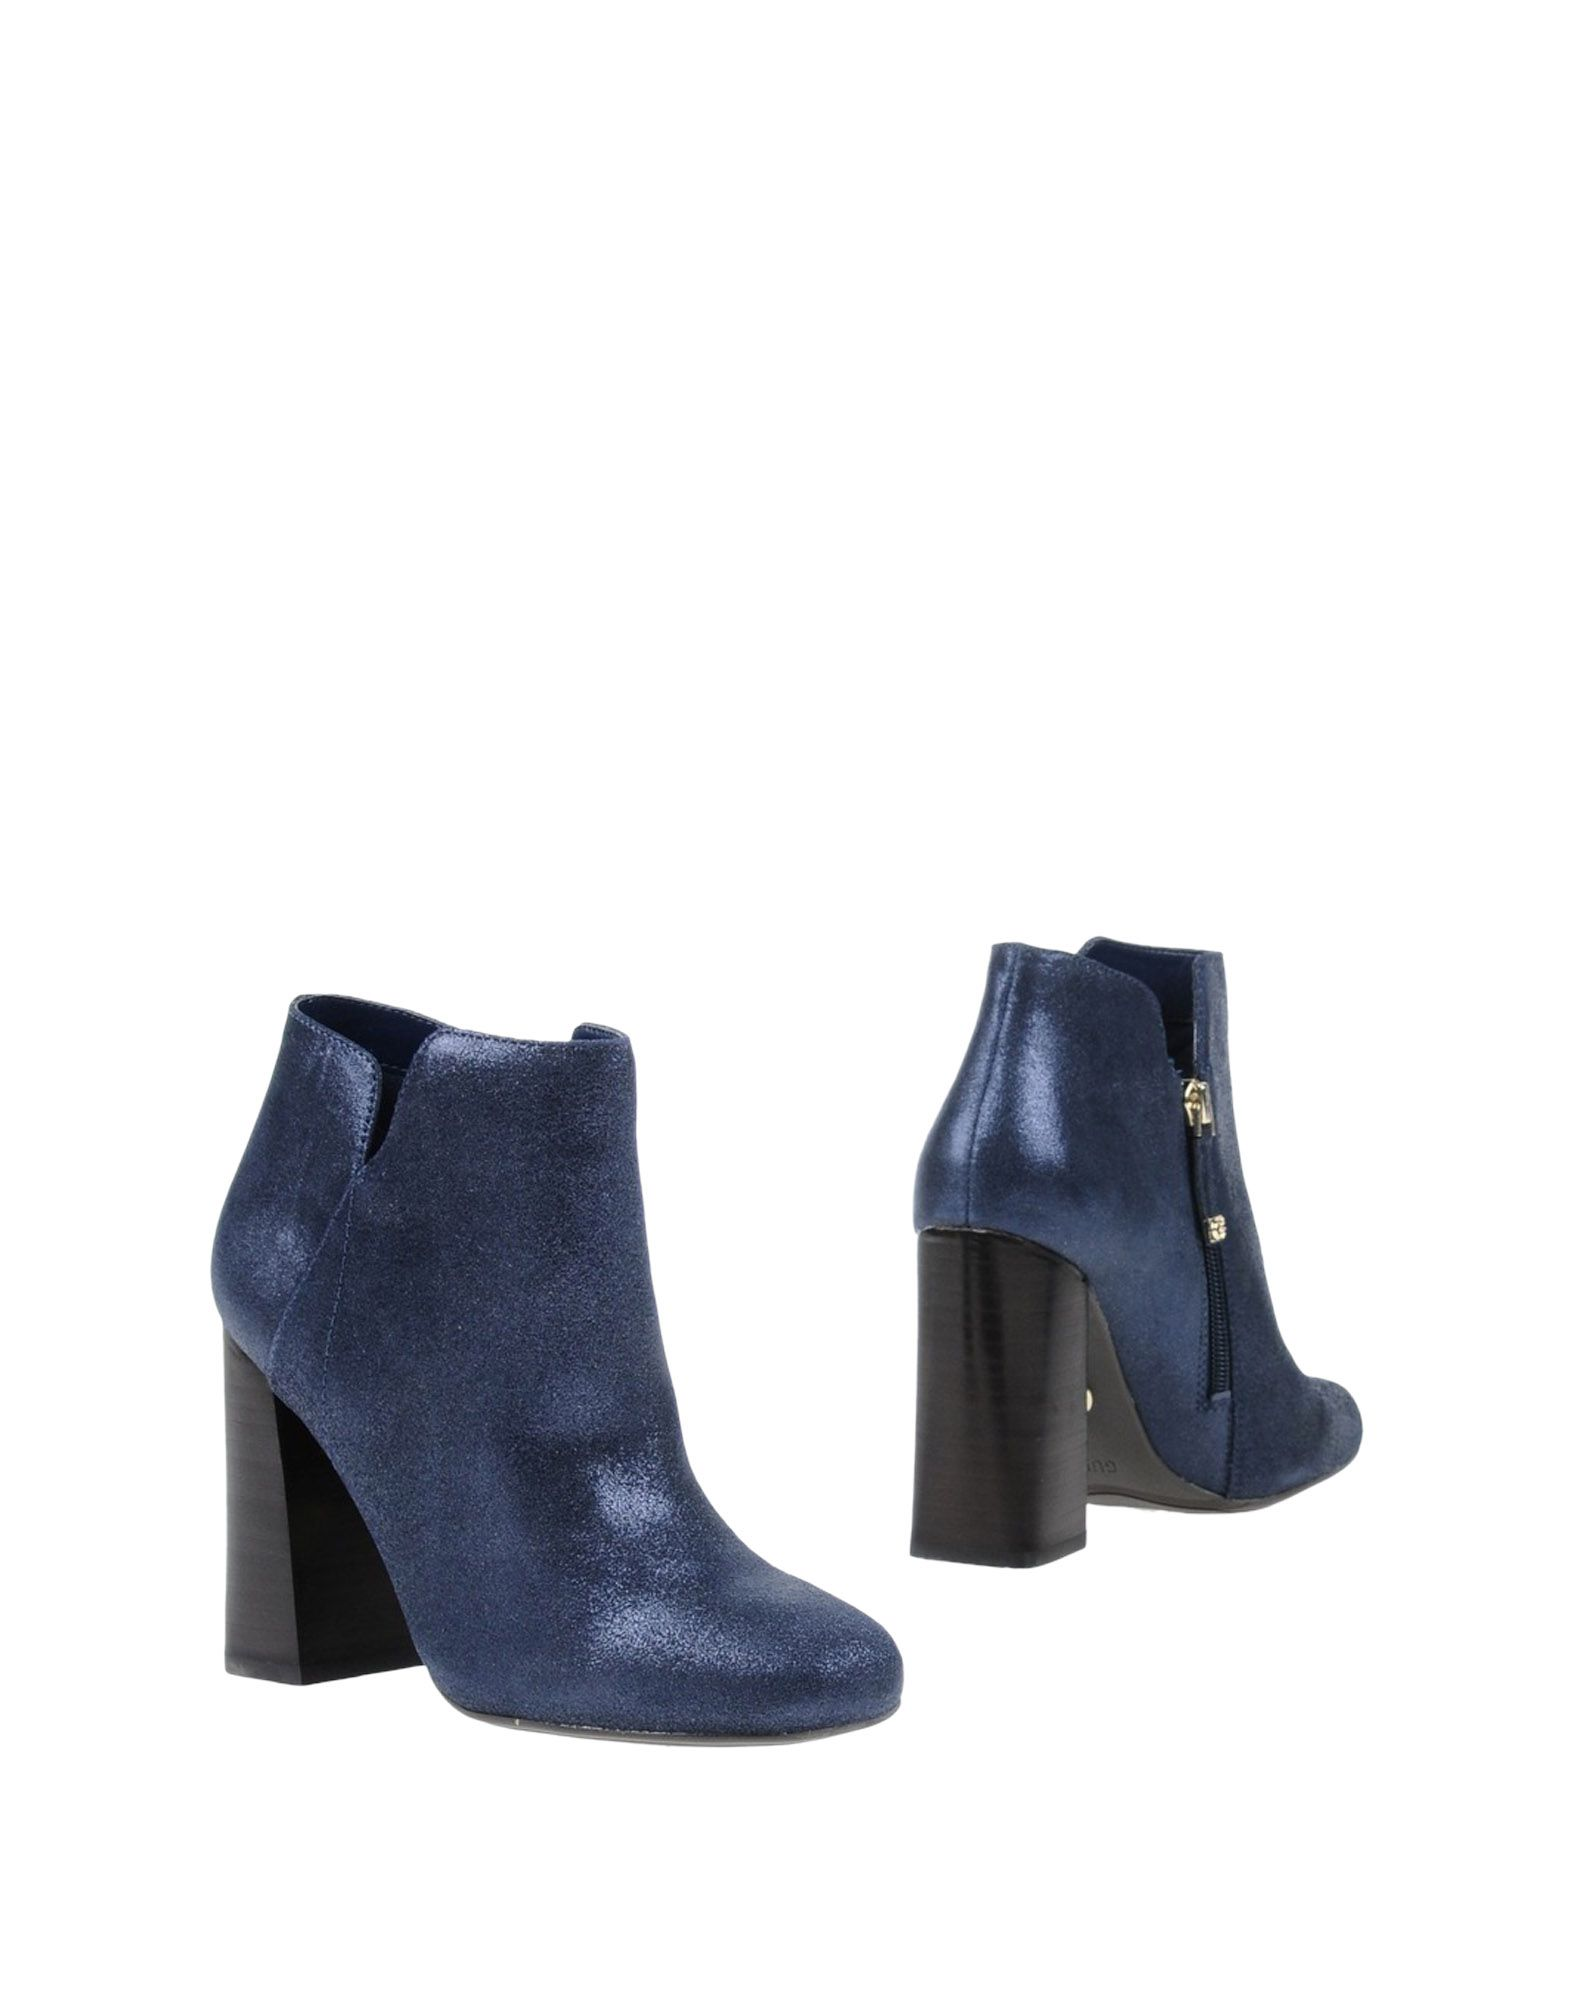 Bottine Guess Femme - Bottines Guess sur